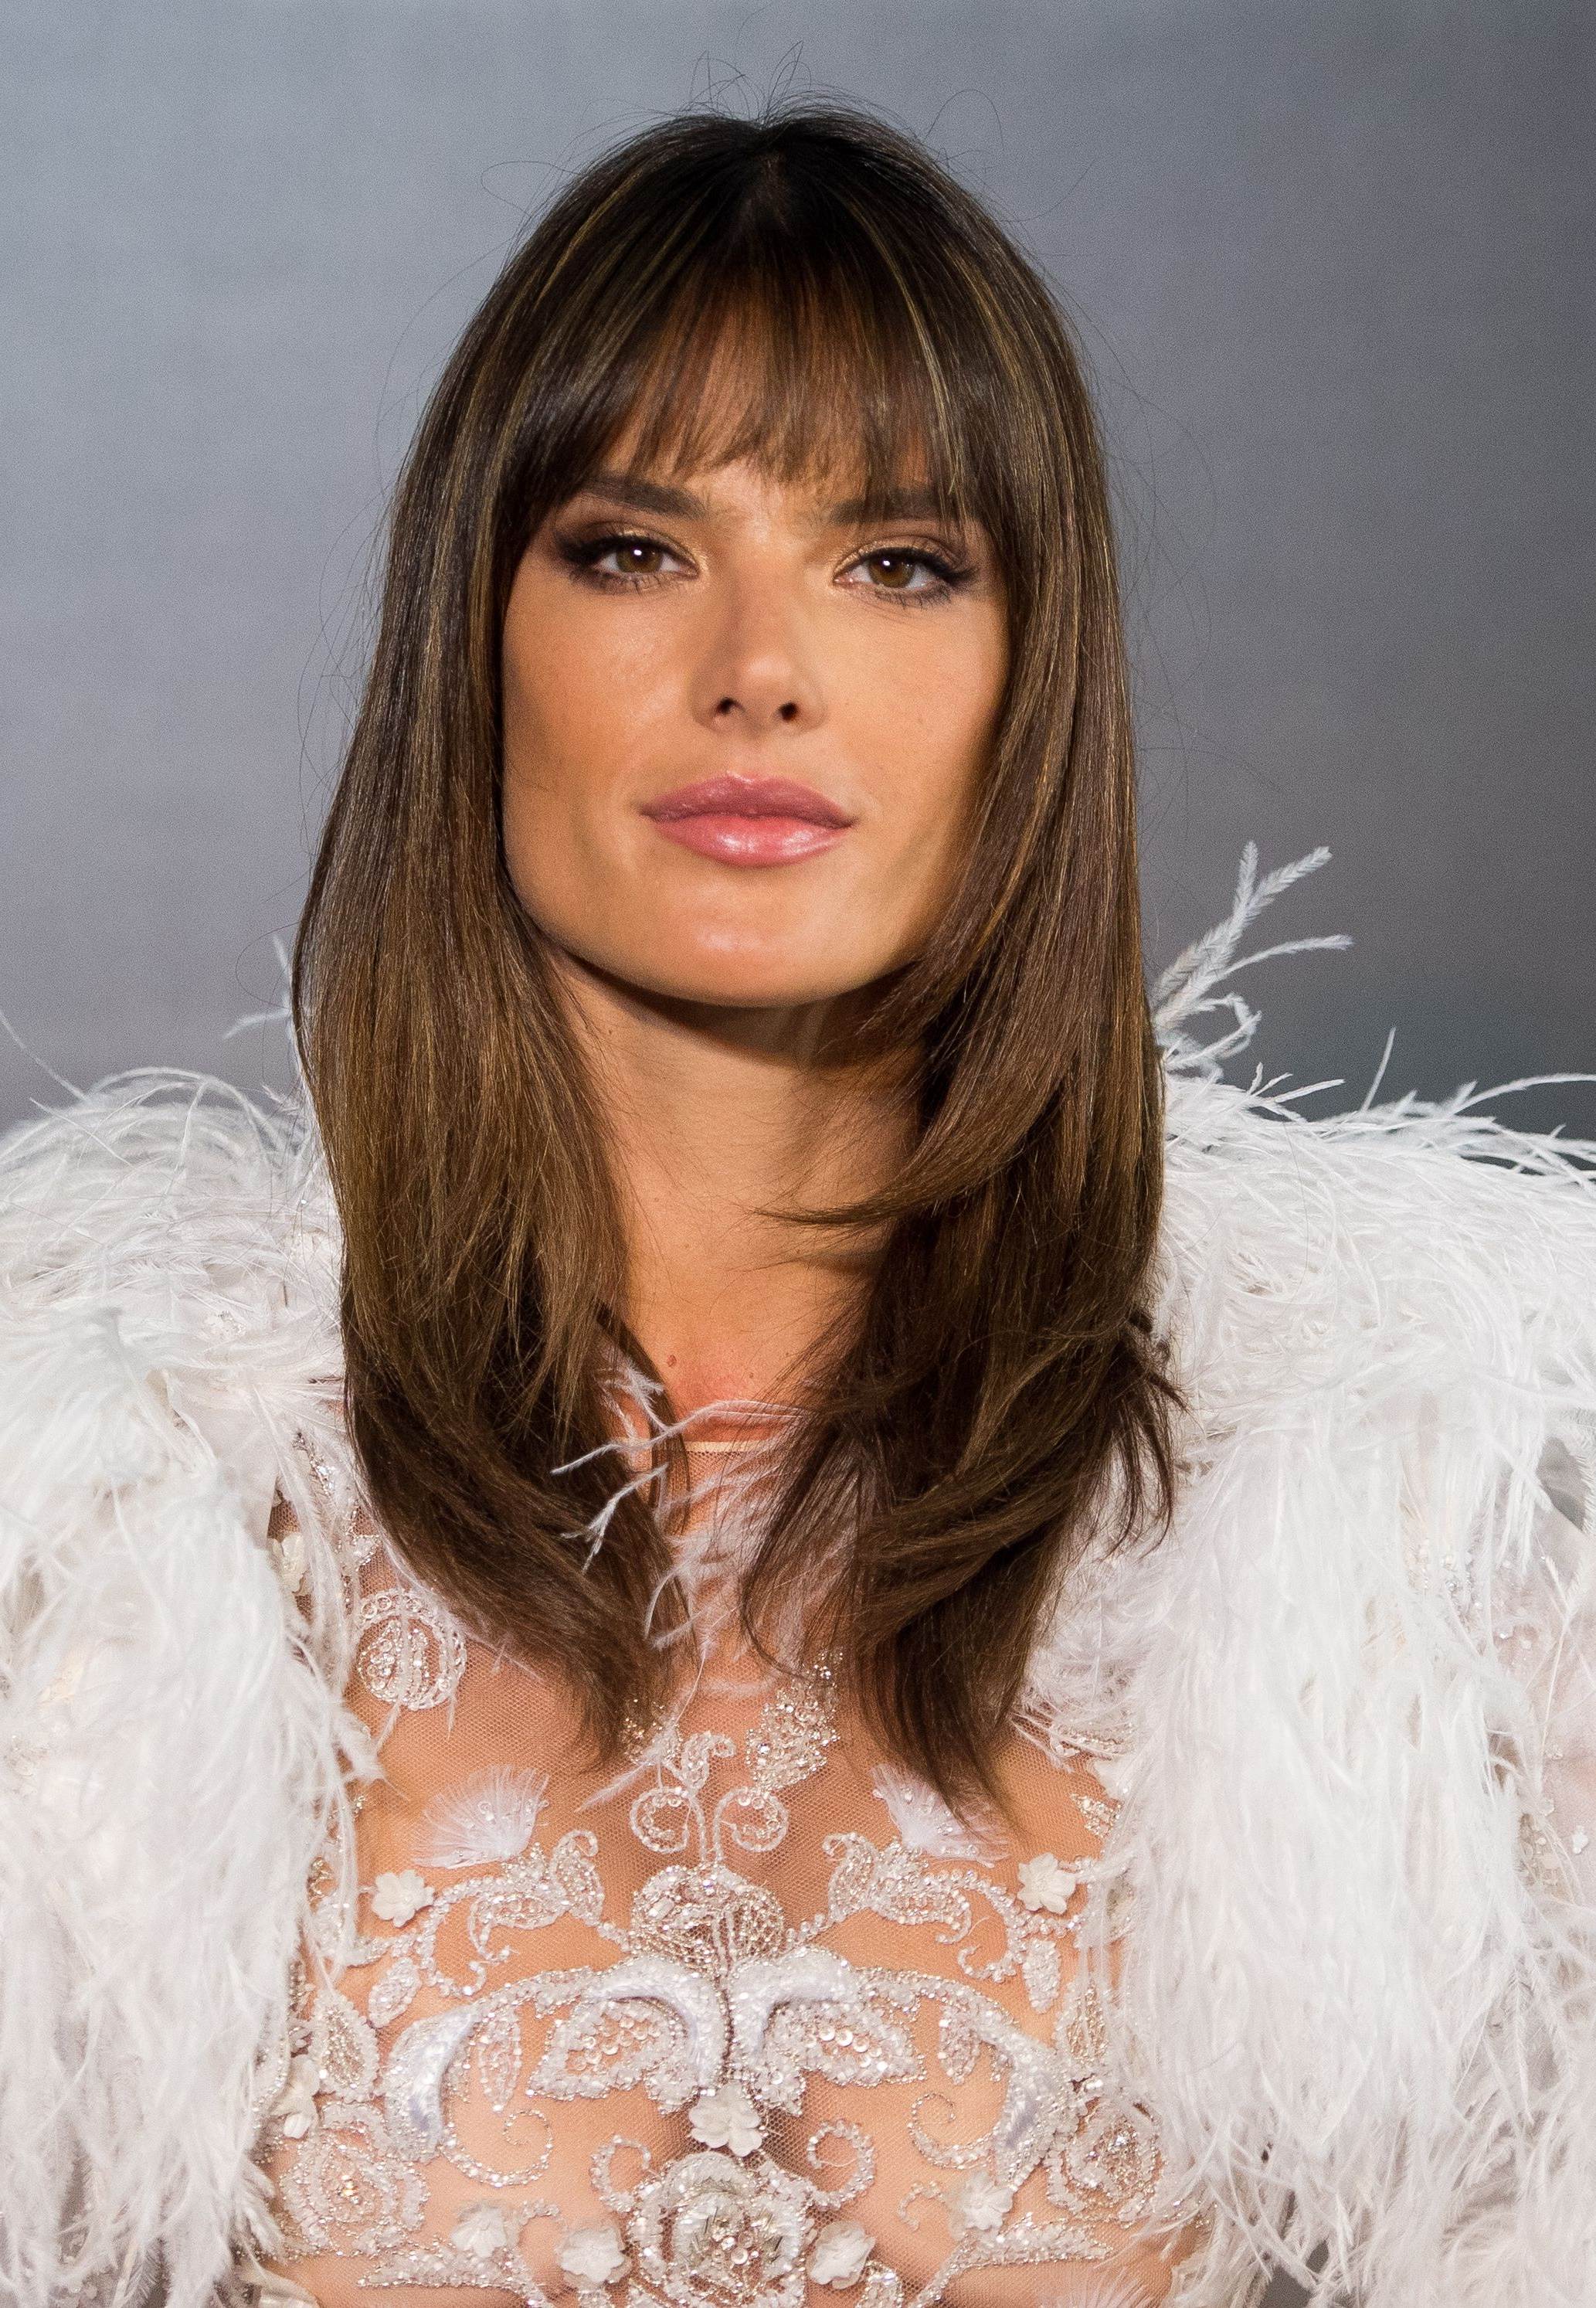 Best Fringe Hairstyles For 2019 – How To Pull Off A Fringe In Latest Medium Length Red Hairstyles With Fringes (View 12 of 20)